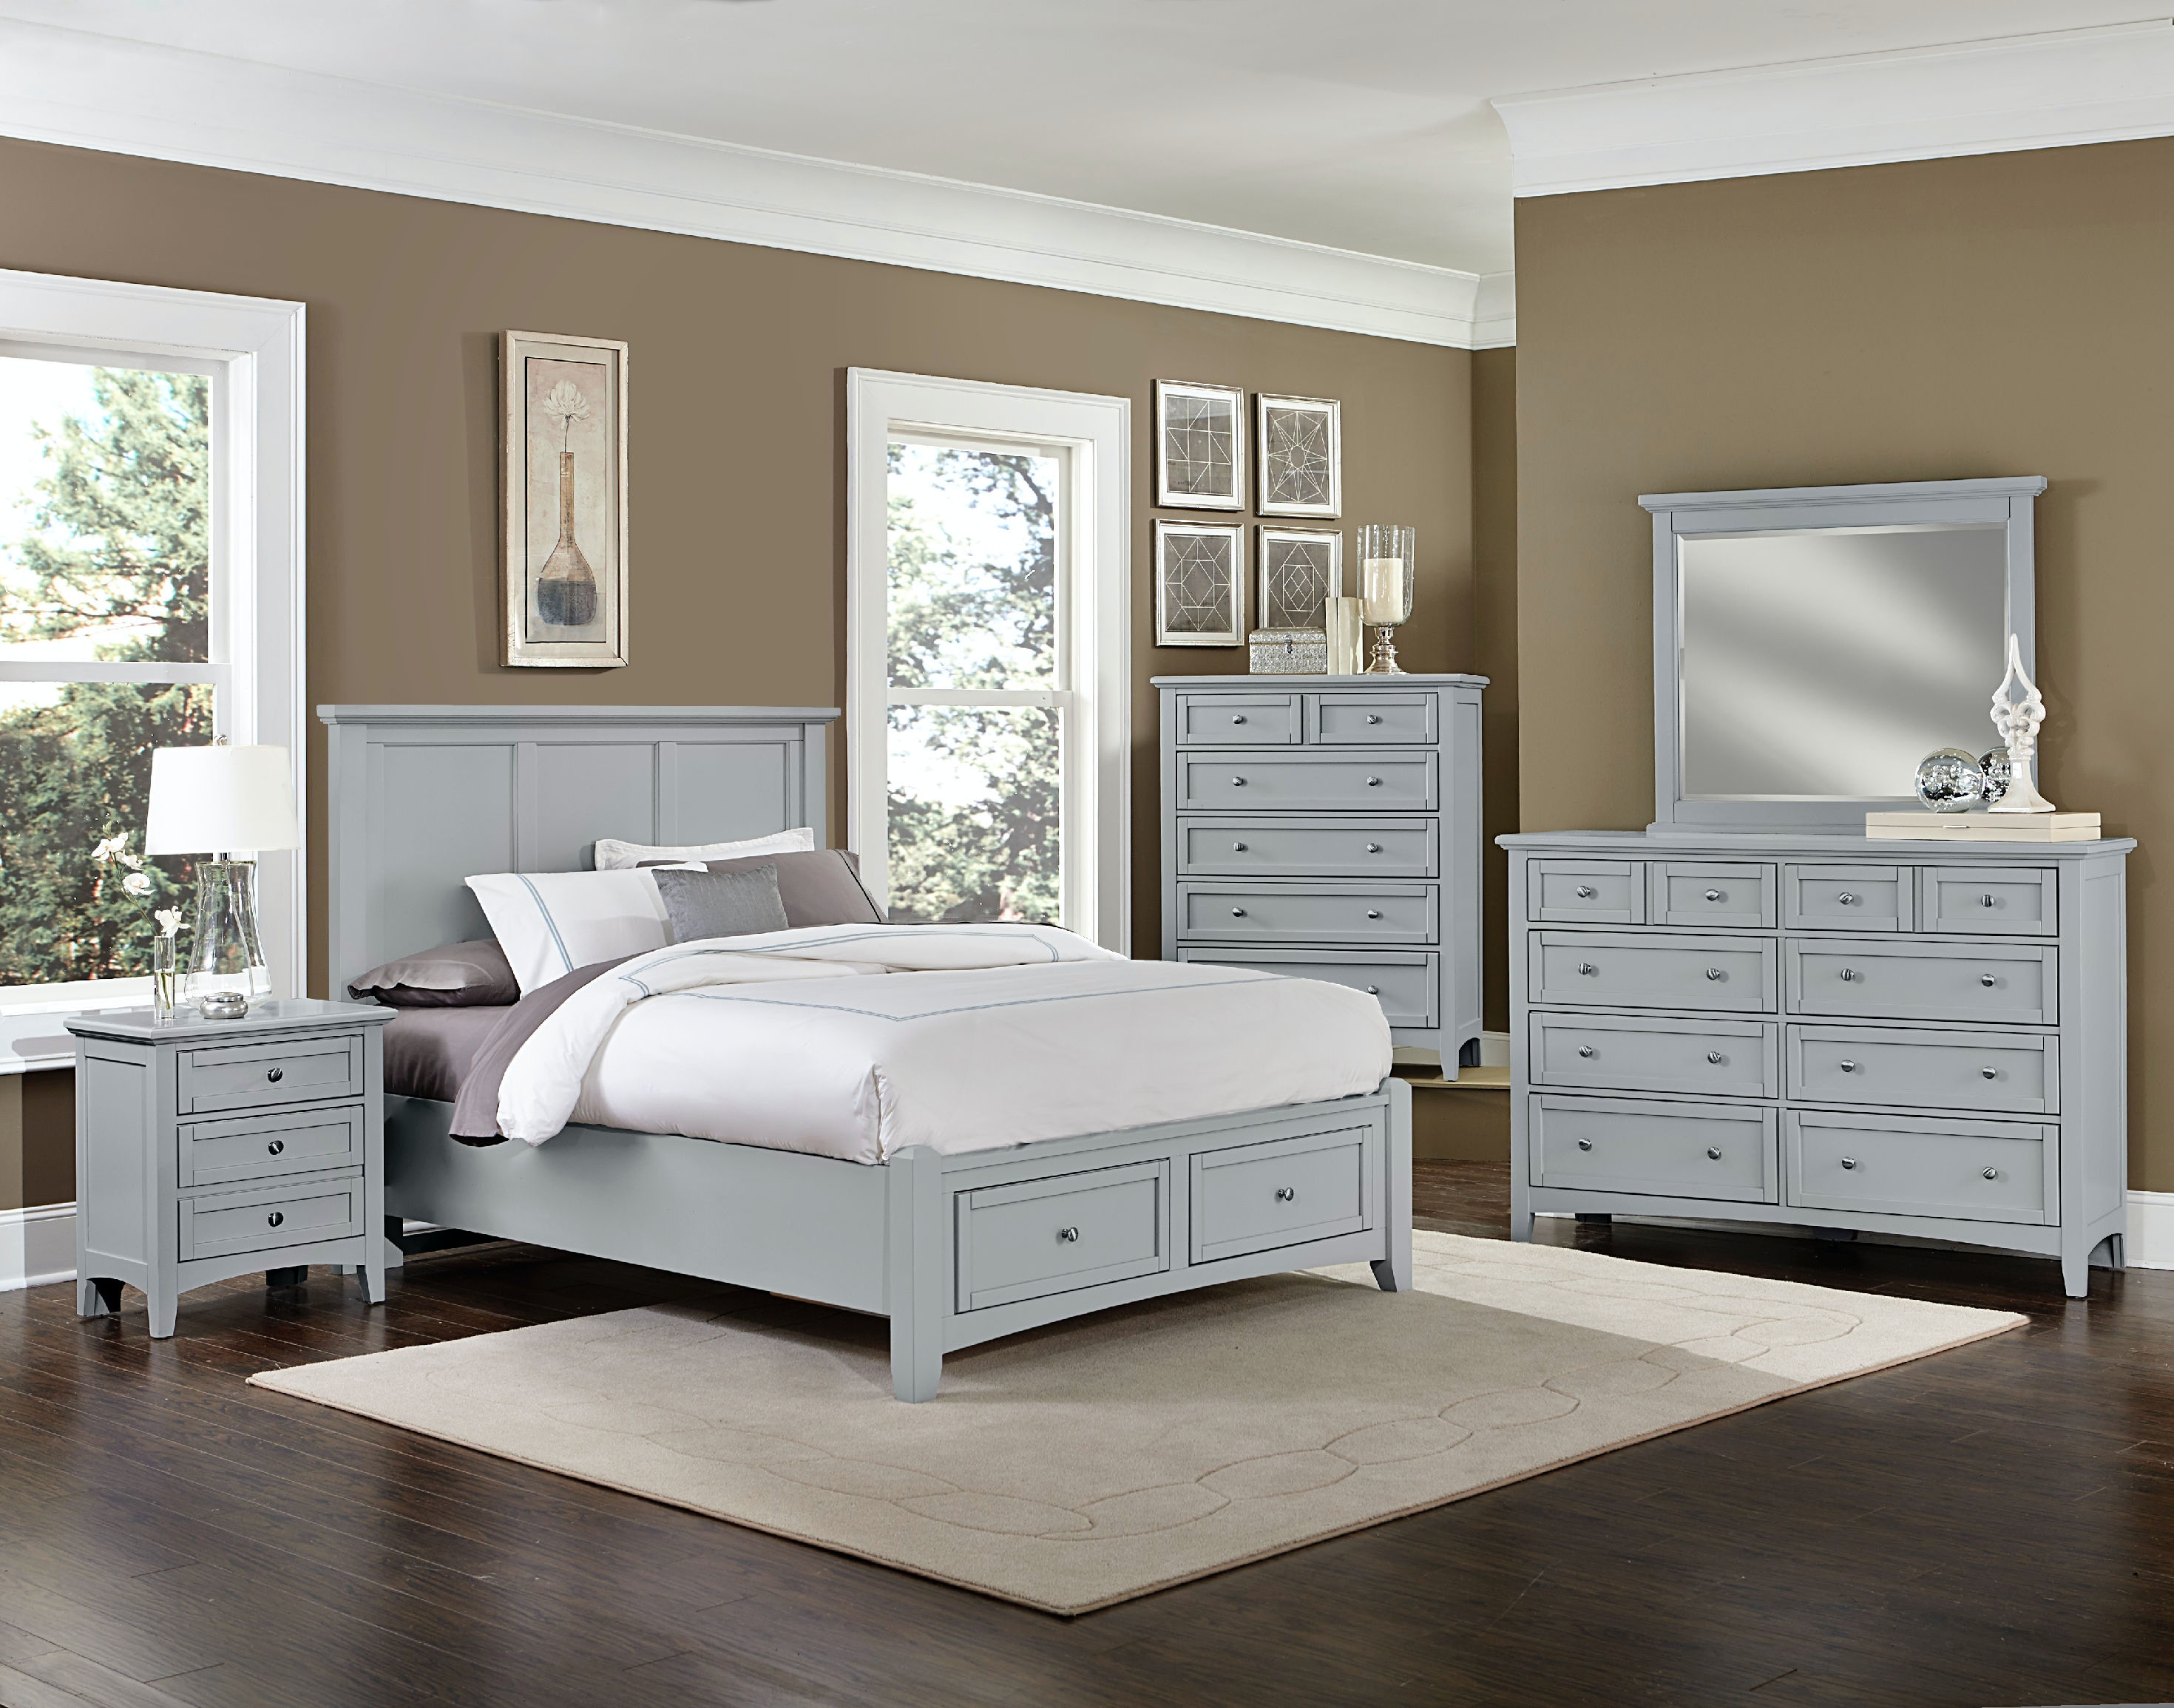 Vaughan bassett youth night stand bb26 226 dfurniture for D furniture galleries rockville md